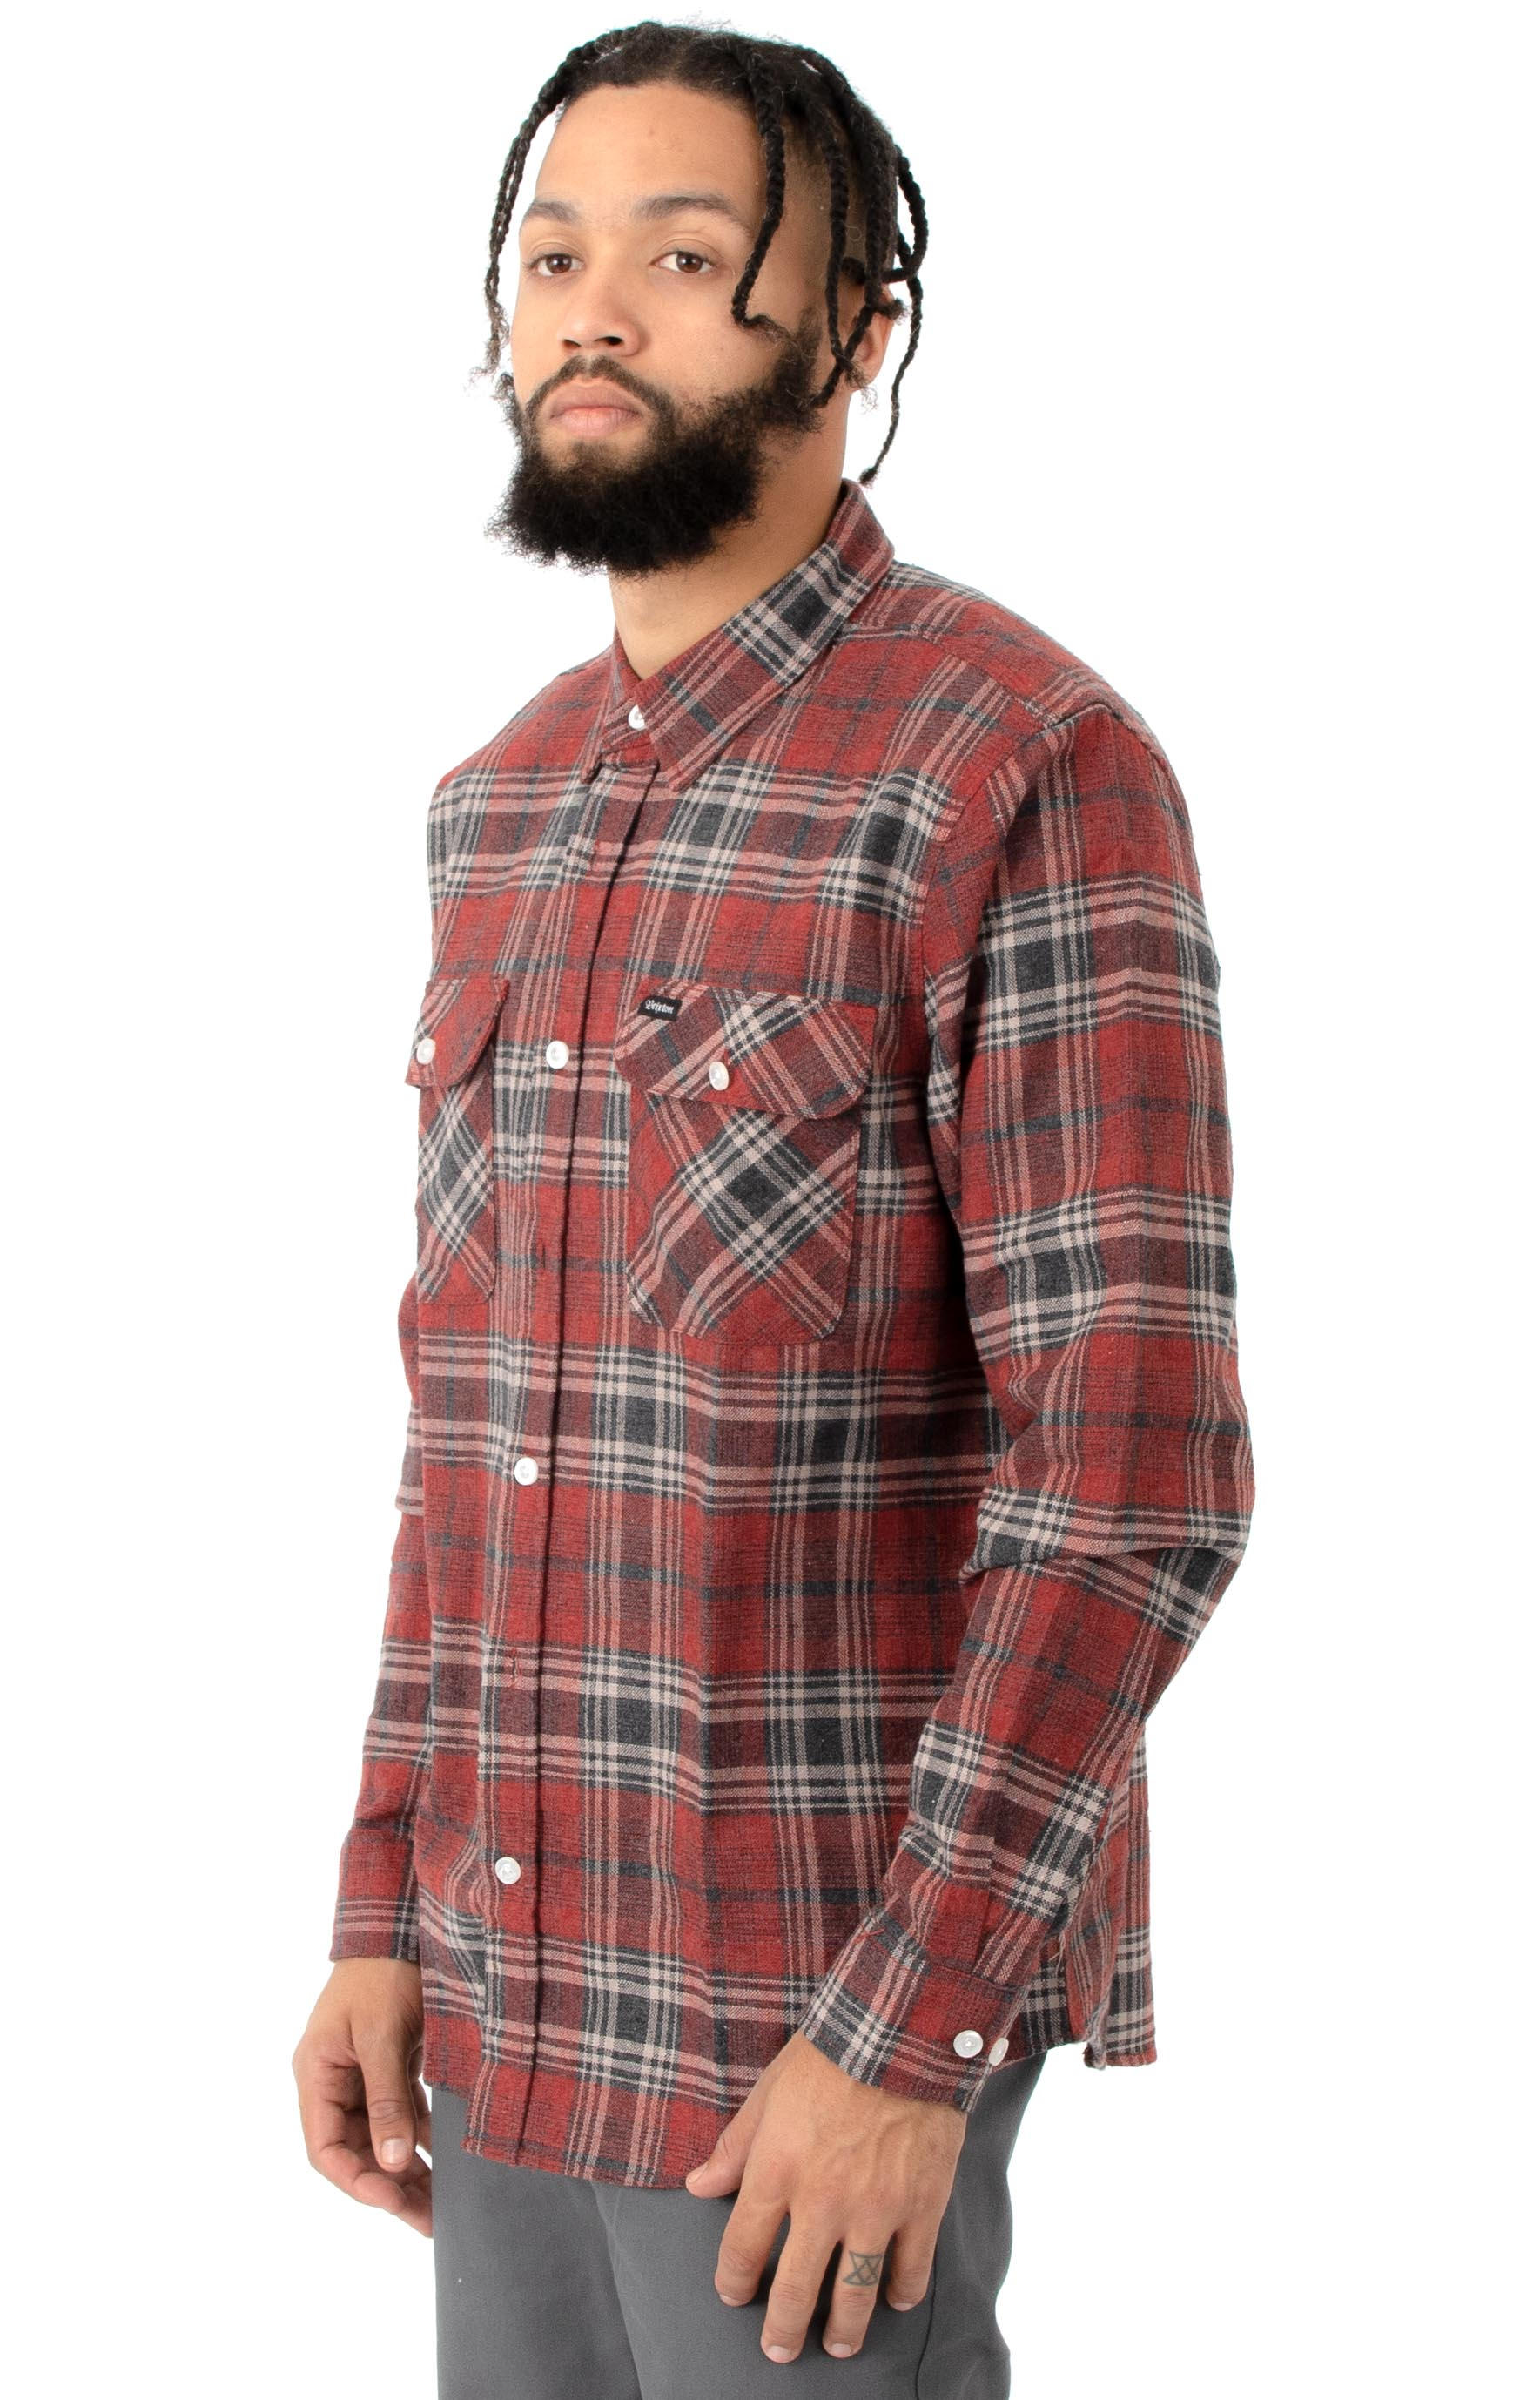 Bowery L/S Button-Up Shirt - Brick/Steel 2